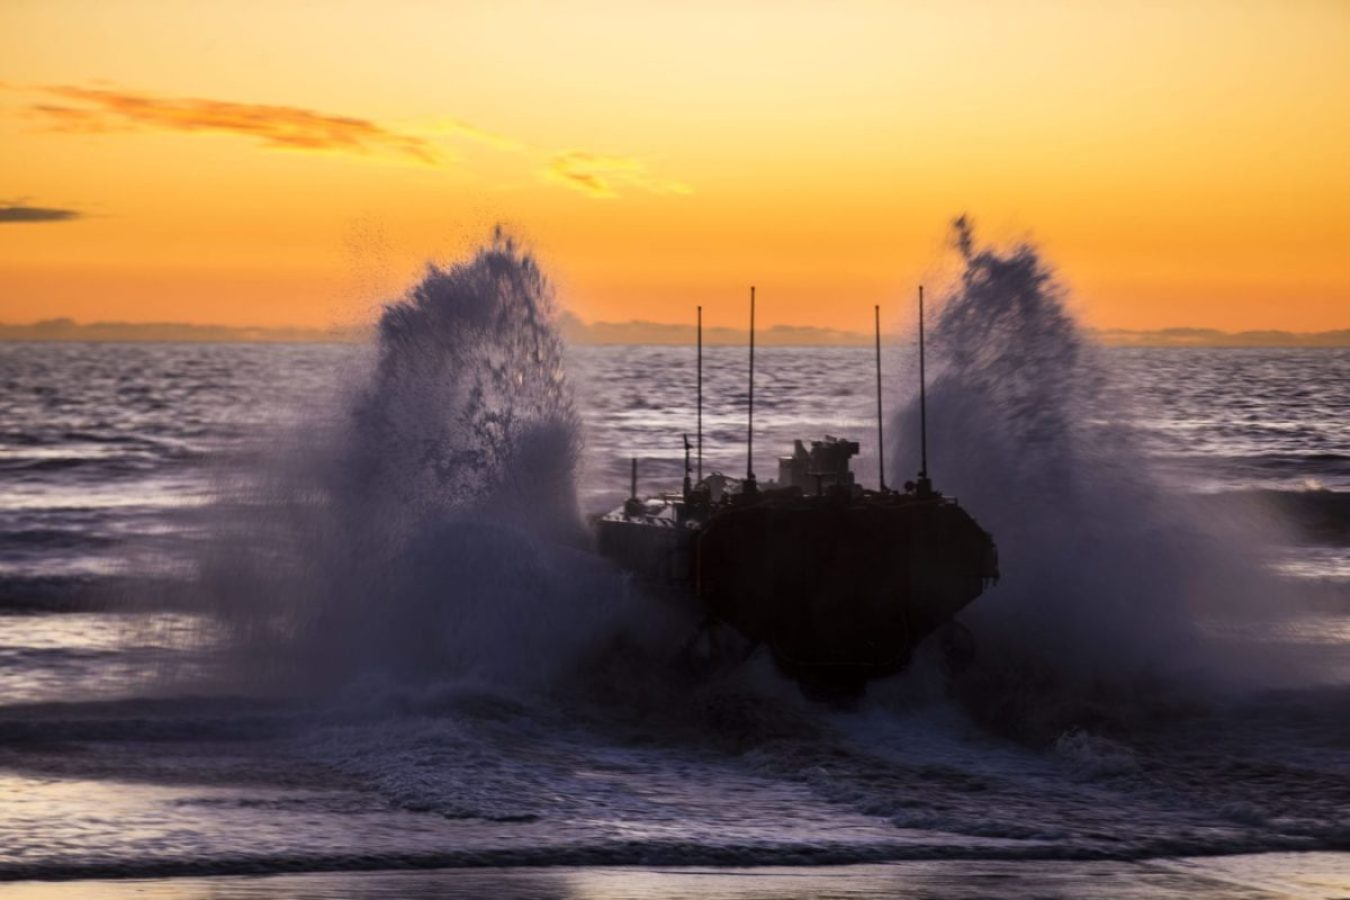 U.S. Marines with Amphibious Vehicle Test Branch, Marine Corps Tactical Systems Support Activity, drive a new Amphibious Combat Vehicle into the ocean during low-light surf transit testing at AVTB Beach on Marine Corps Base Camp Pendleton, California, Dec. 18.